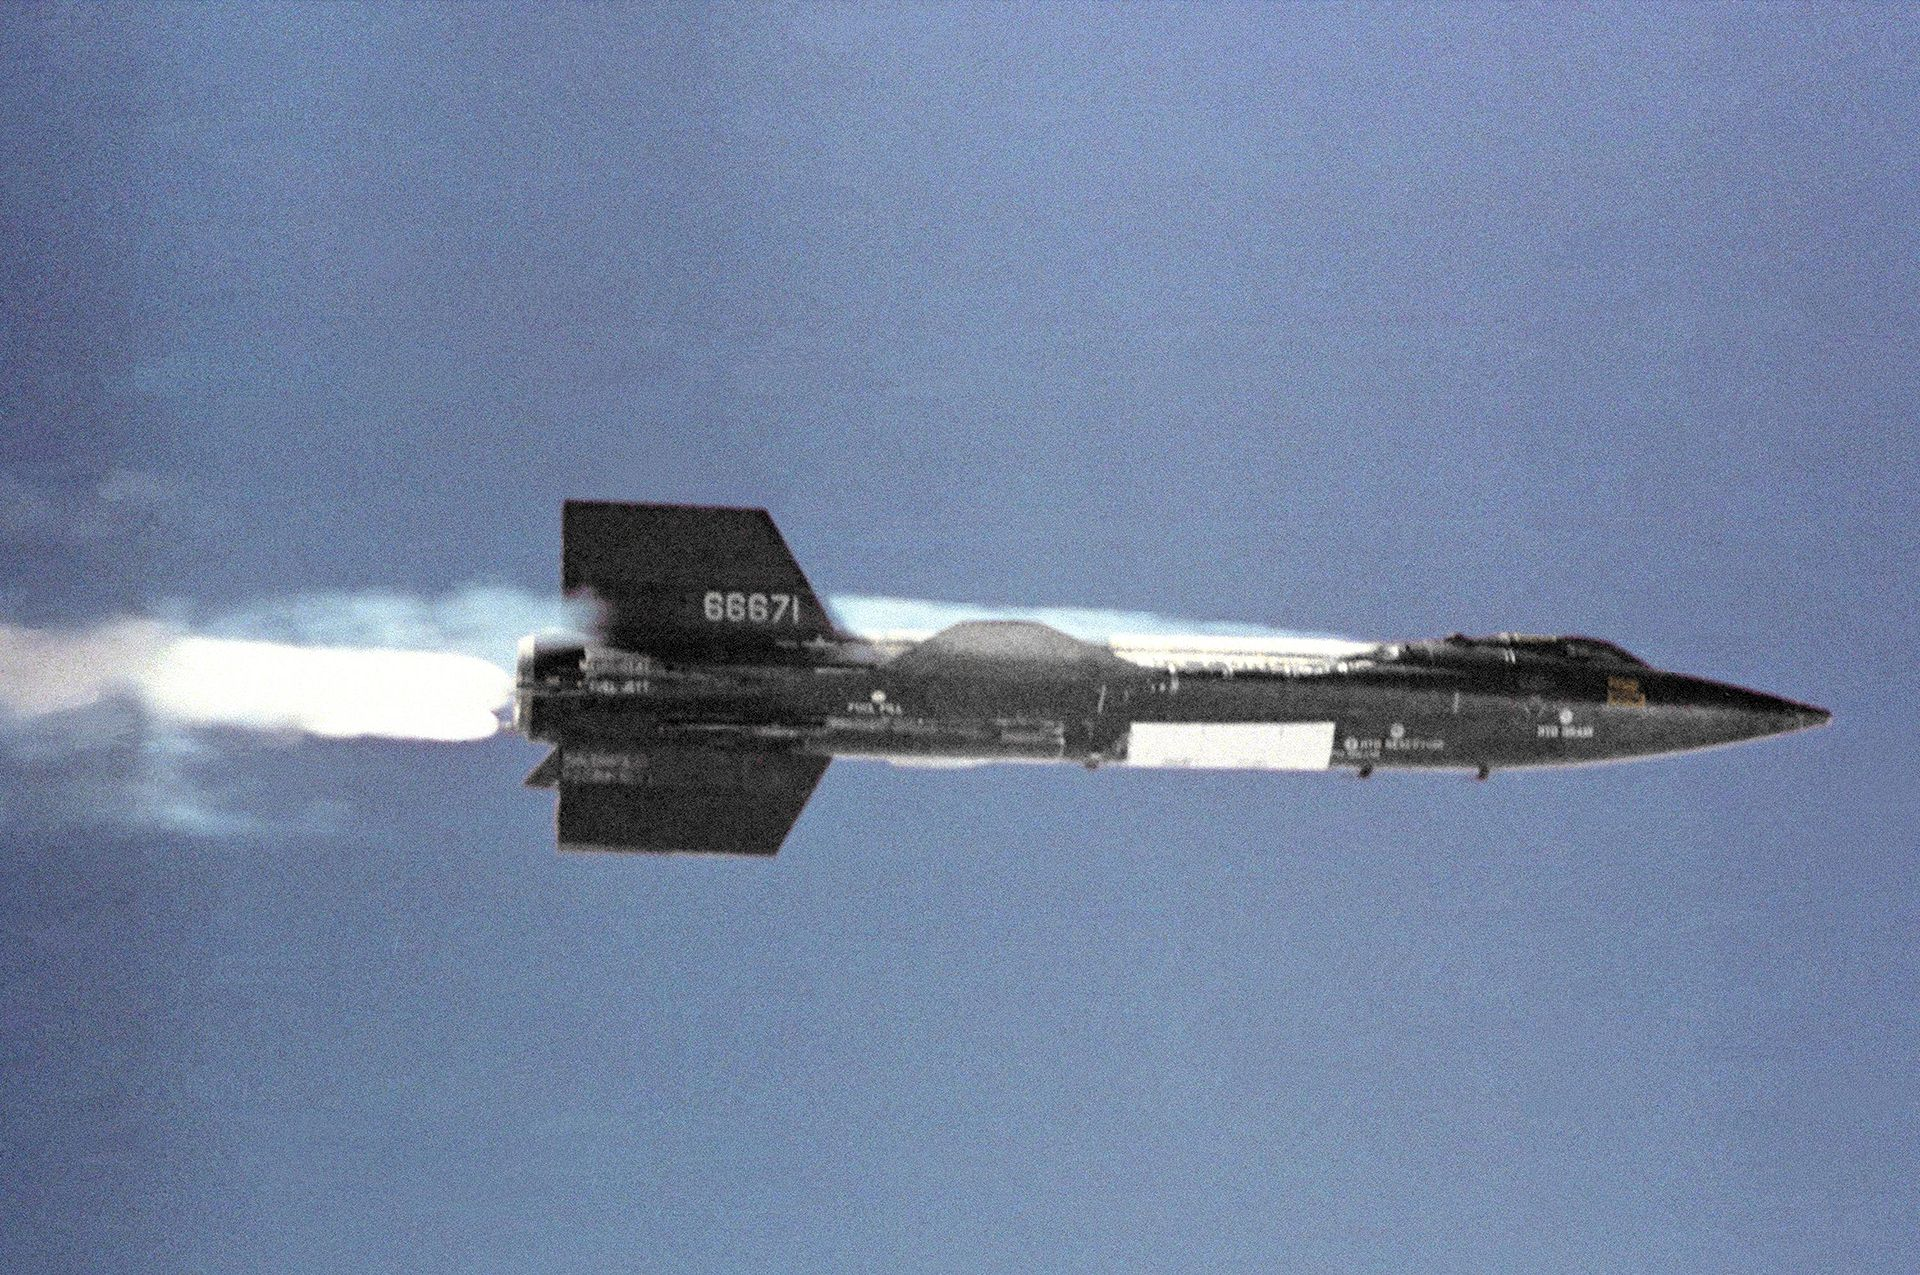 Fastest Jet In The World >> The Fastest Rocket Plane In The World X 15 Migflug Com Blog